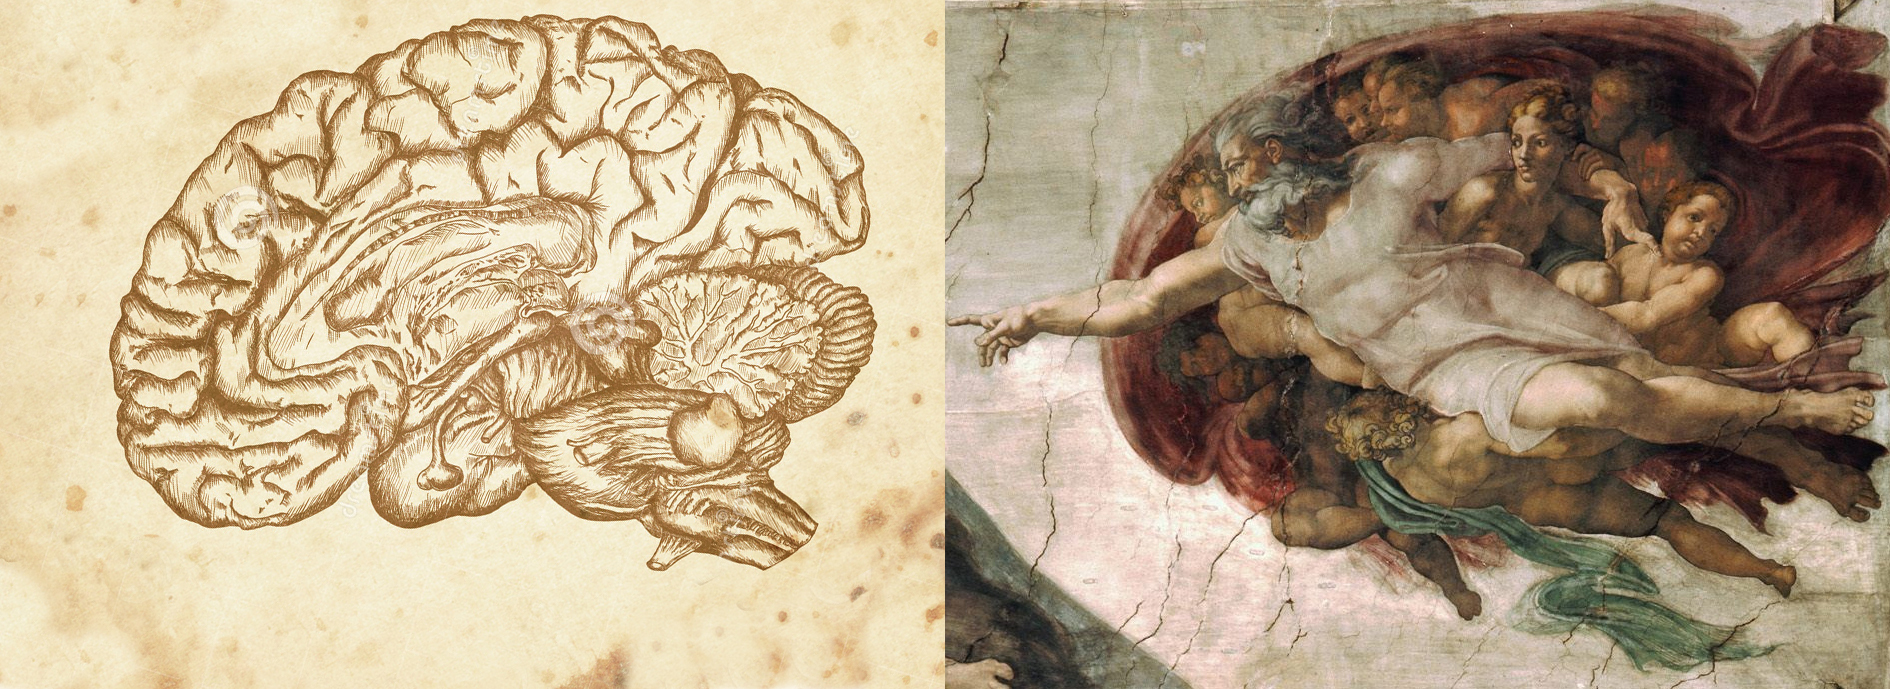 hersenen vs michelangelo